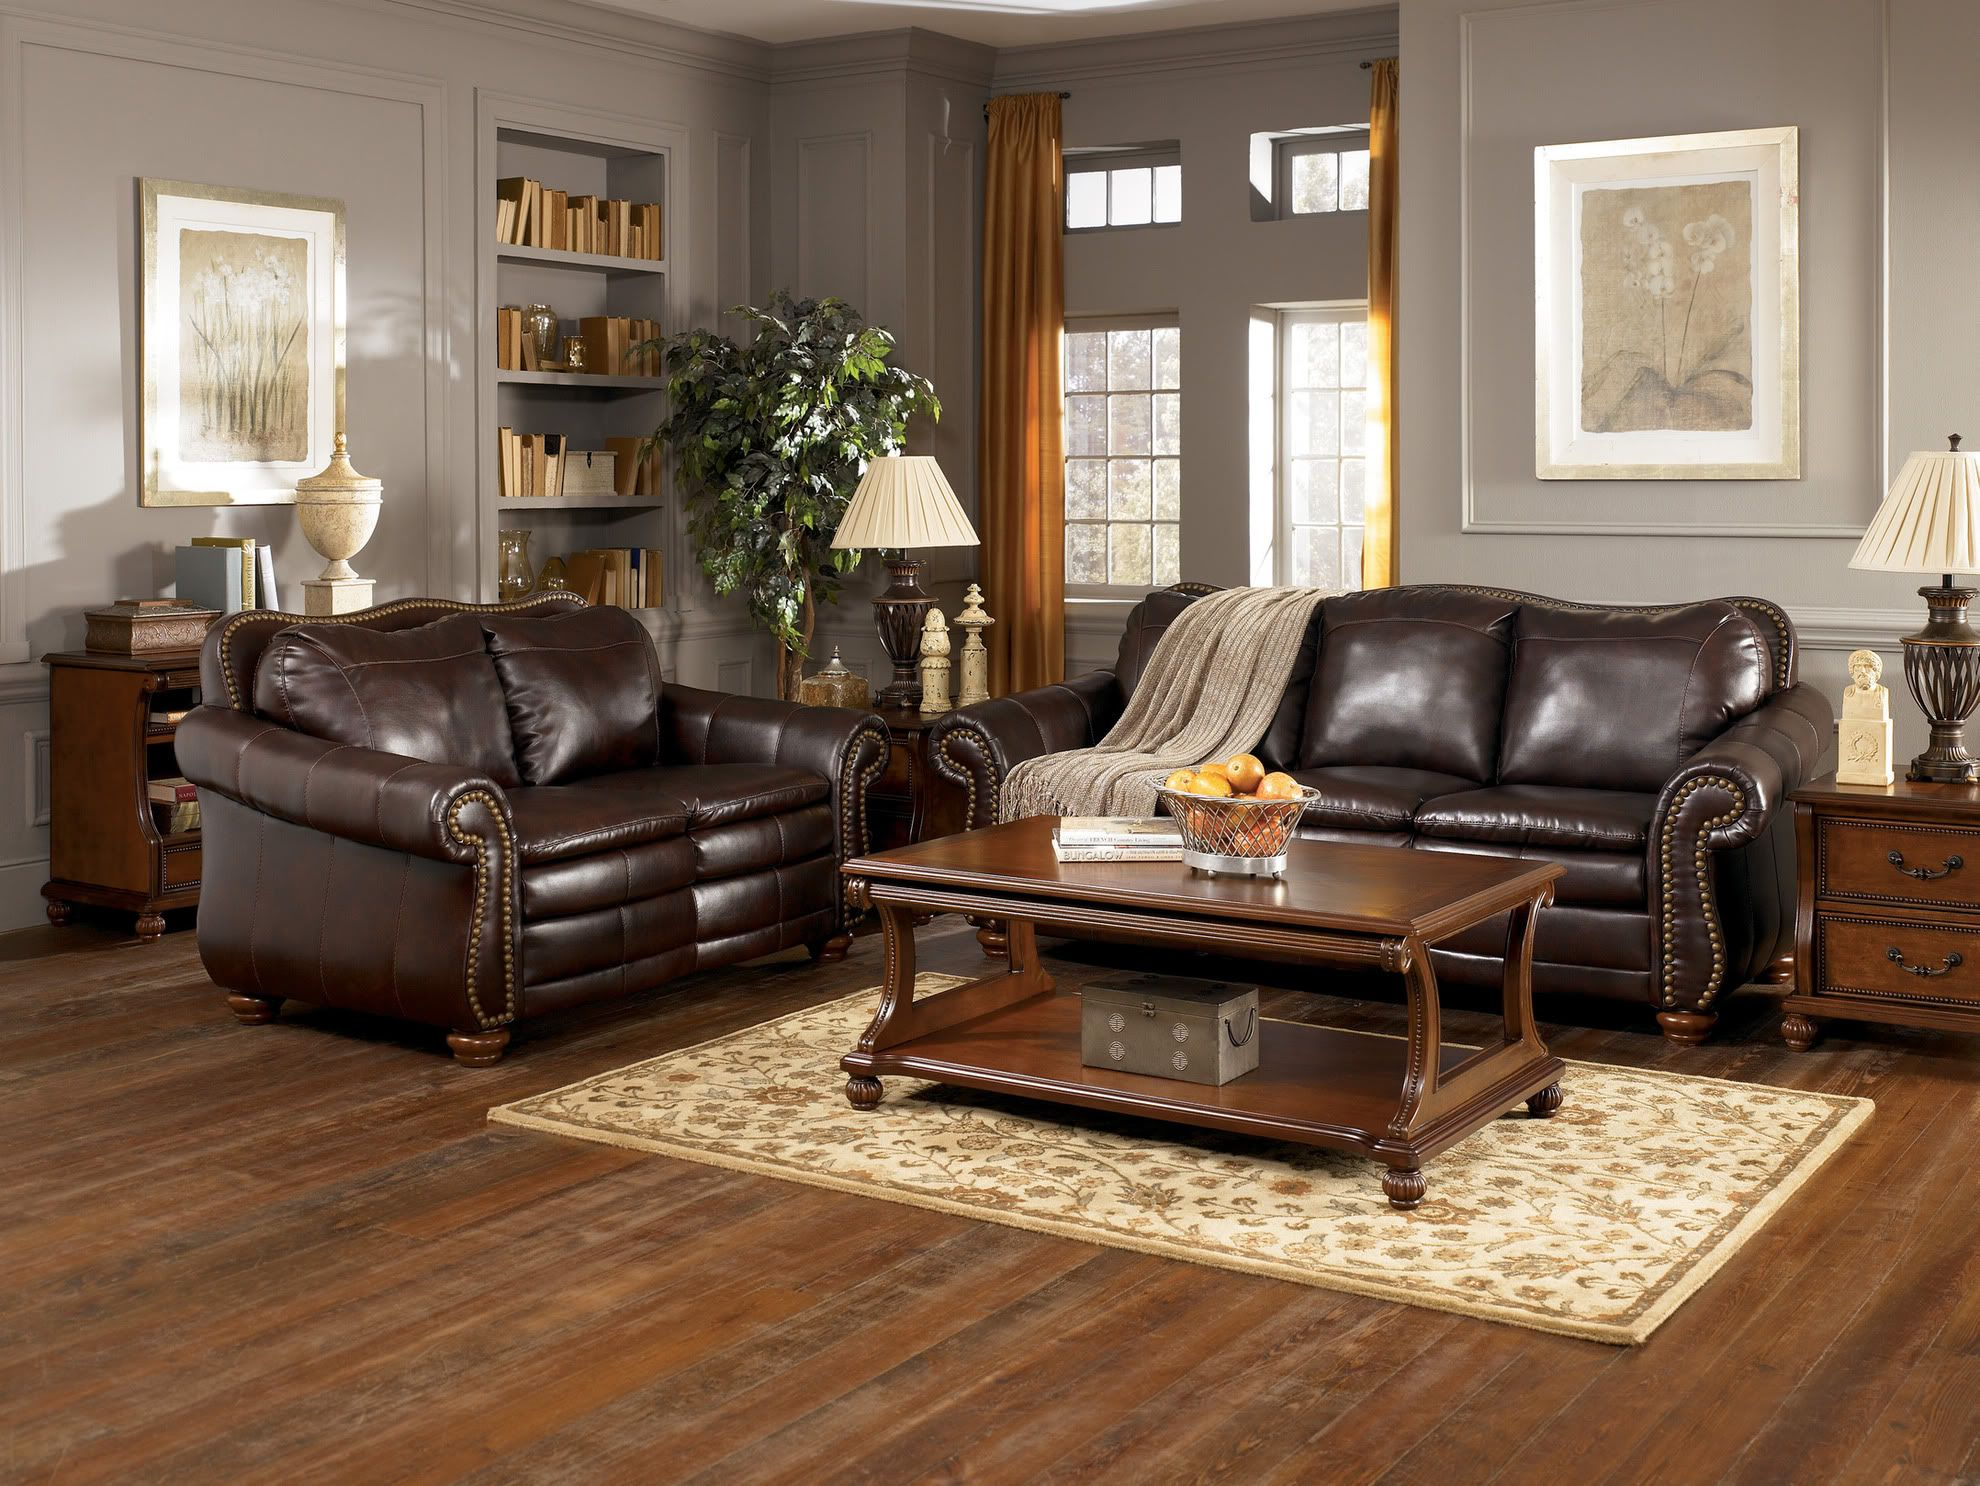 Best Fetching Grey Living Room With Brown Furniture Design 640 x 480